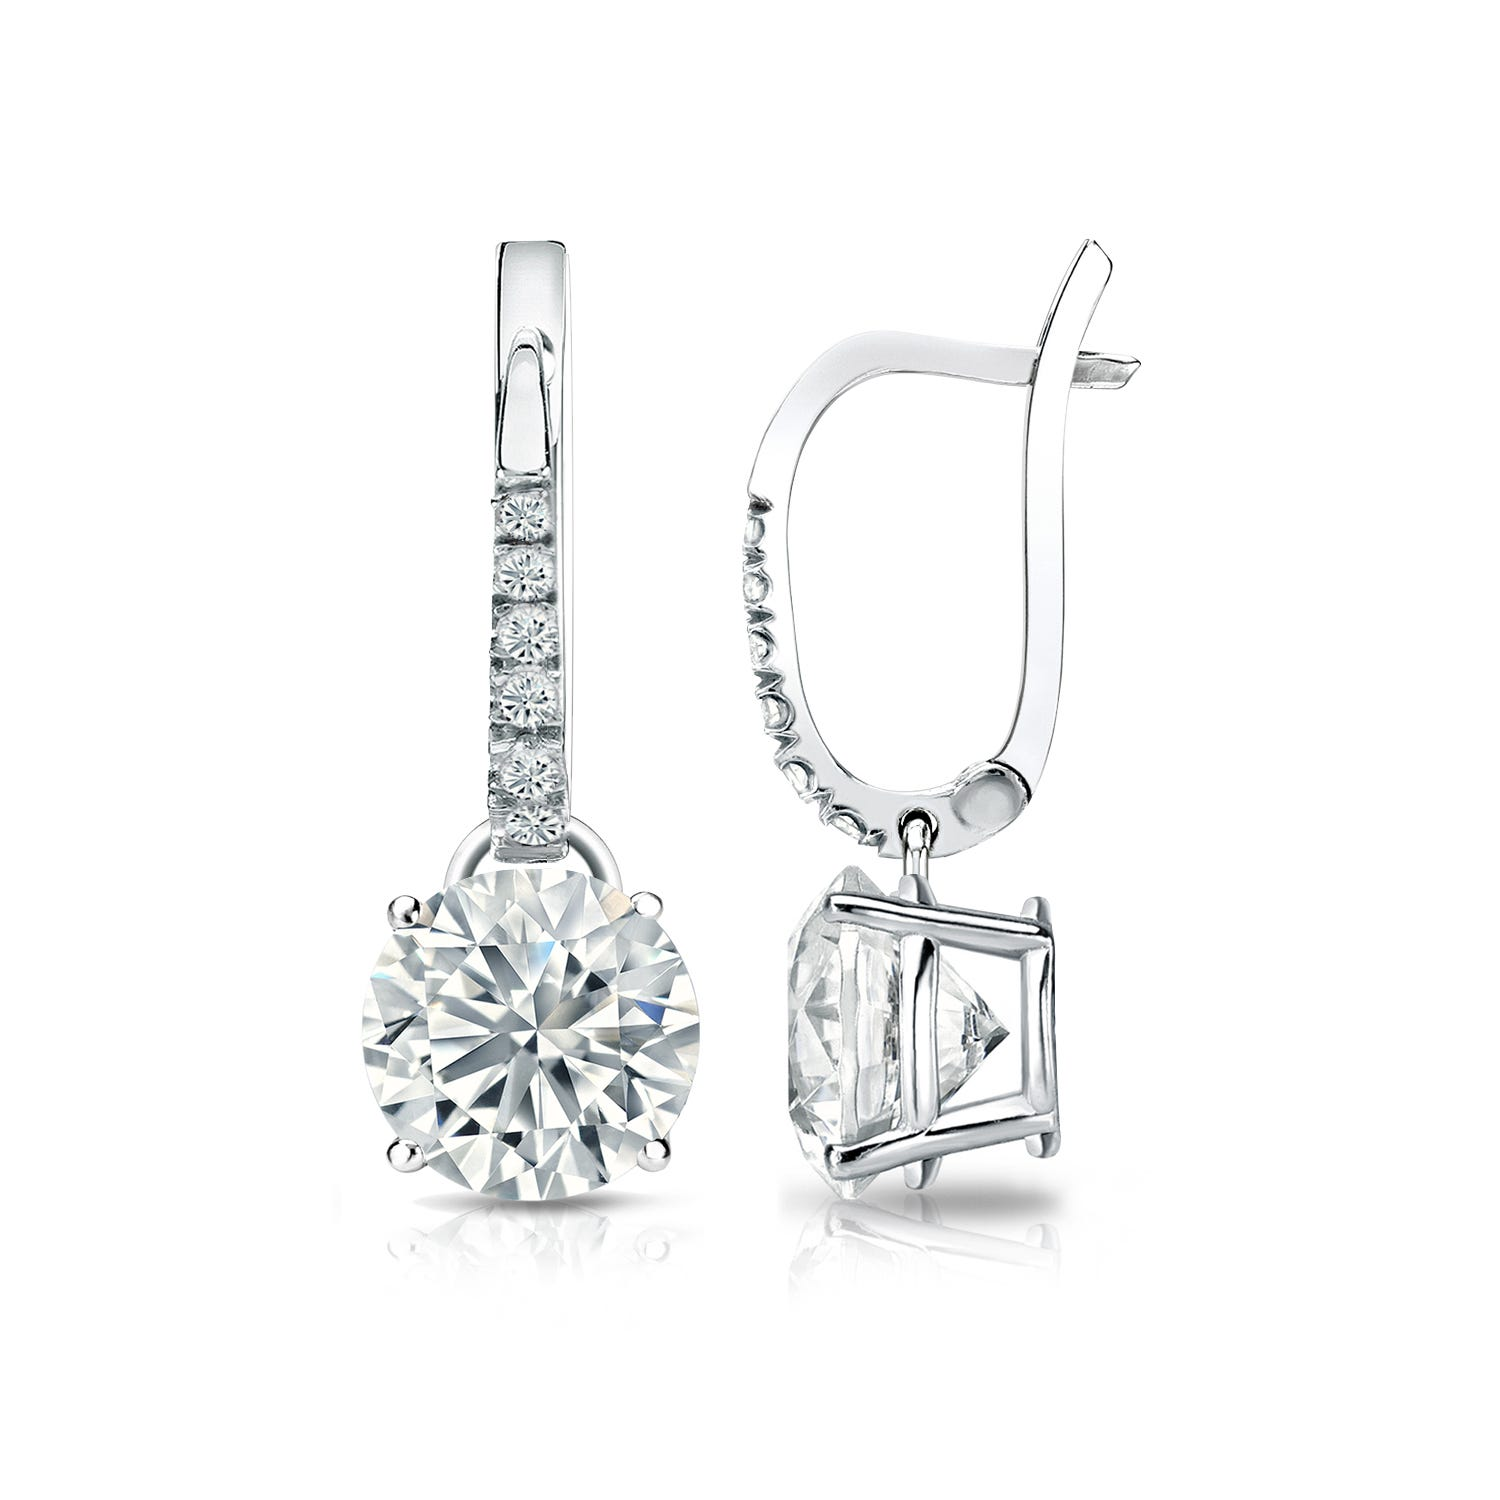 Diamond 2ctw. 4-Prong Round Drop Earrings in 18k White Gold SI1 Clarity